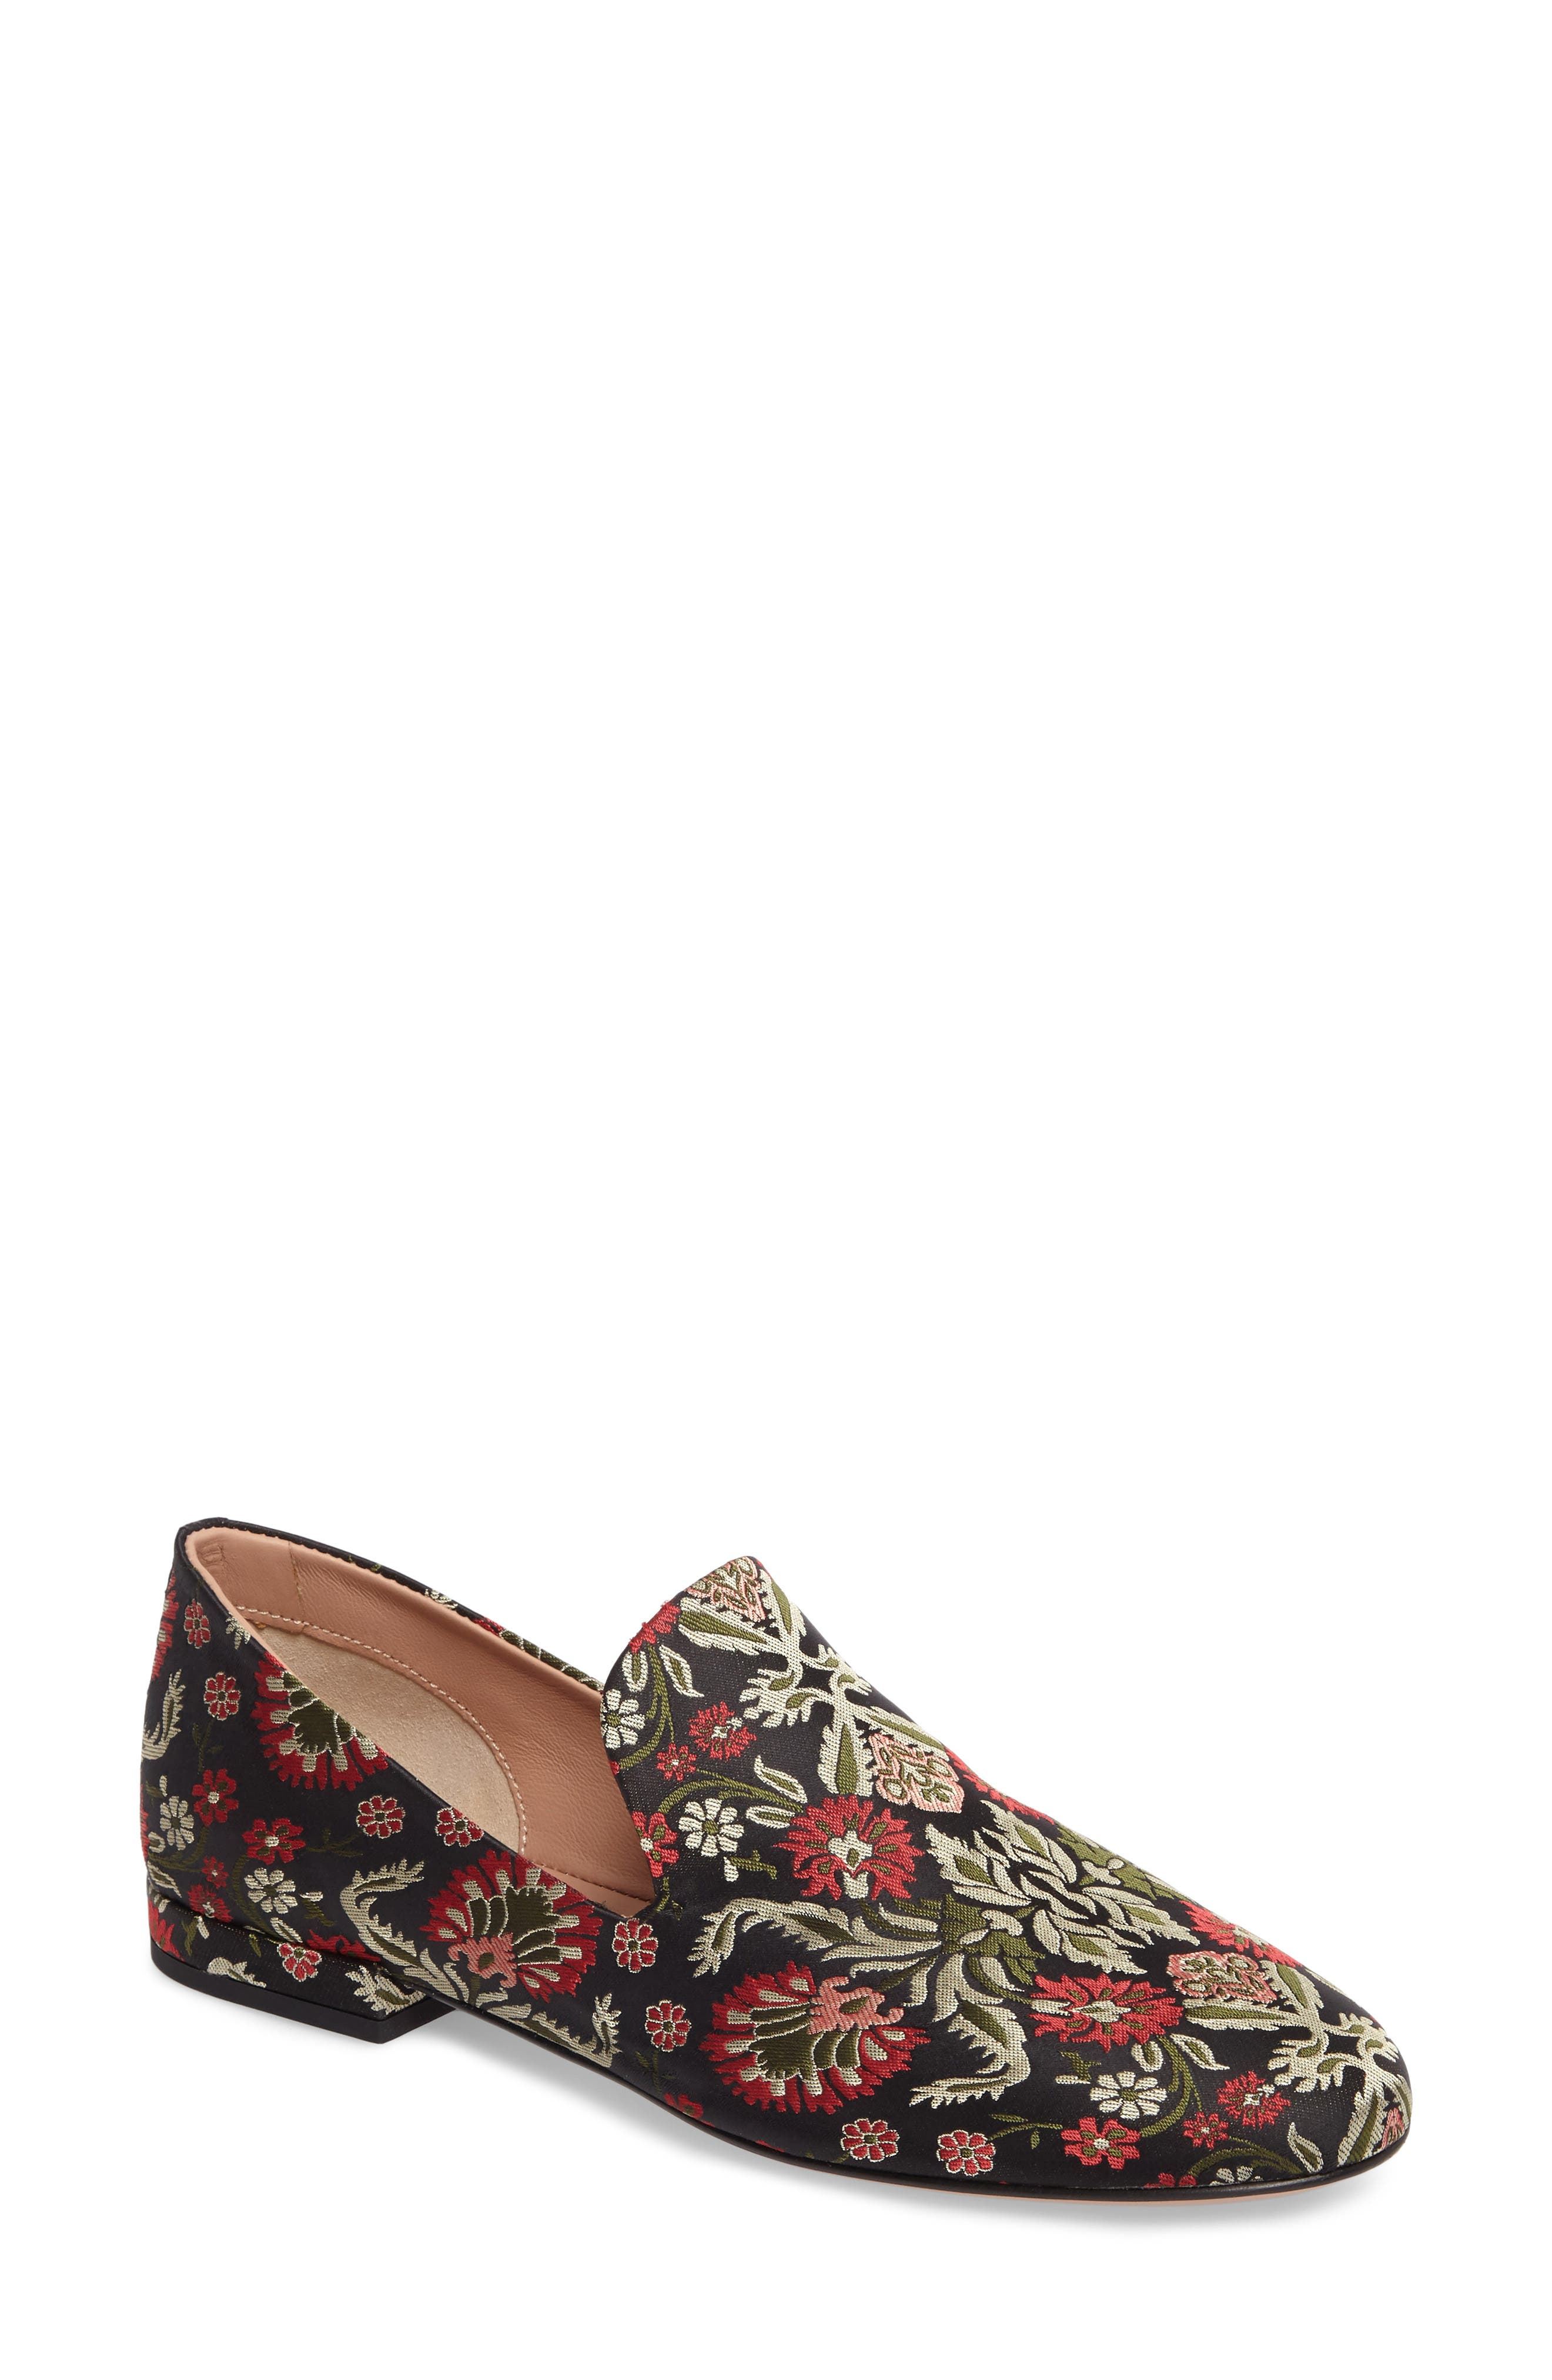 Gabriella Loafer,                         Main,                         color, Red / Green Fabric